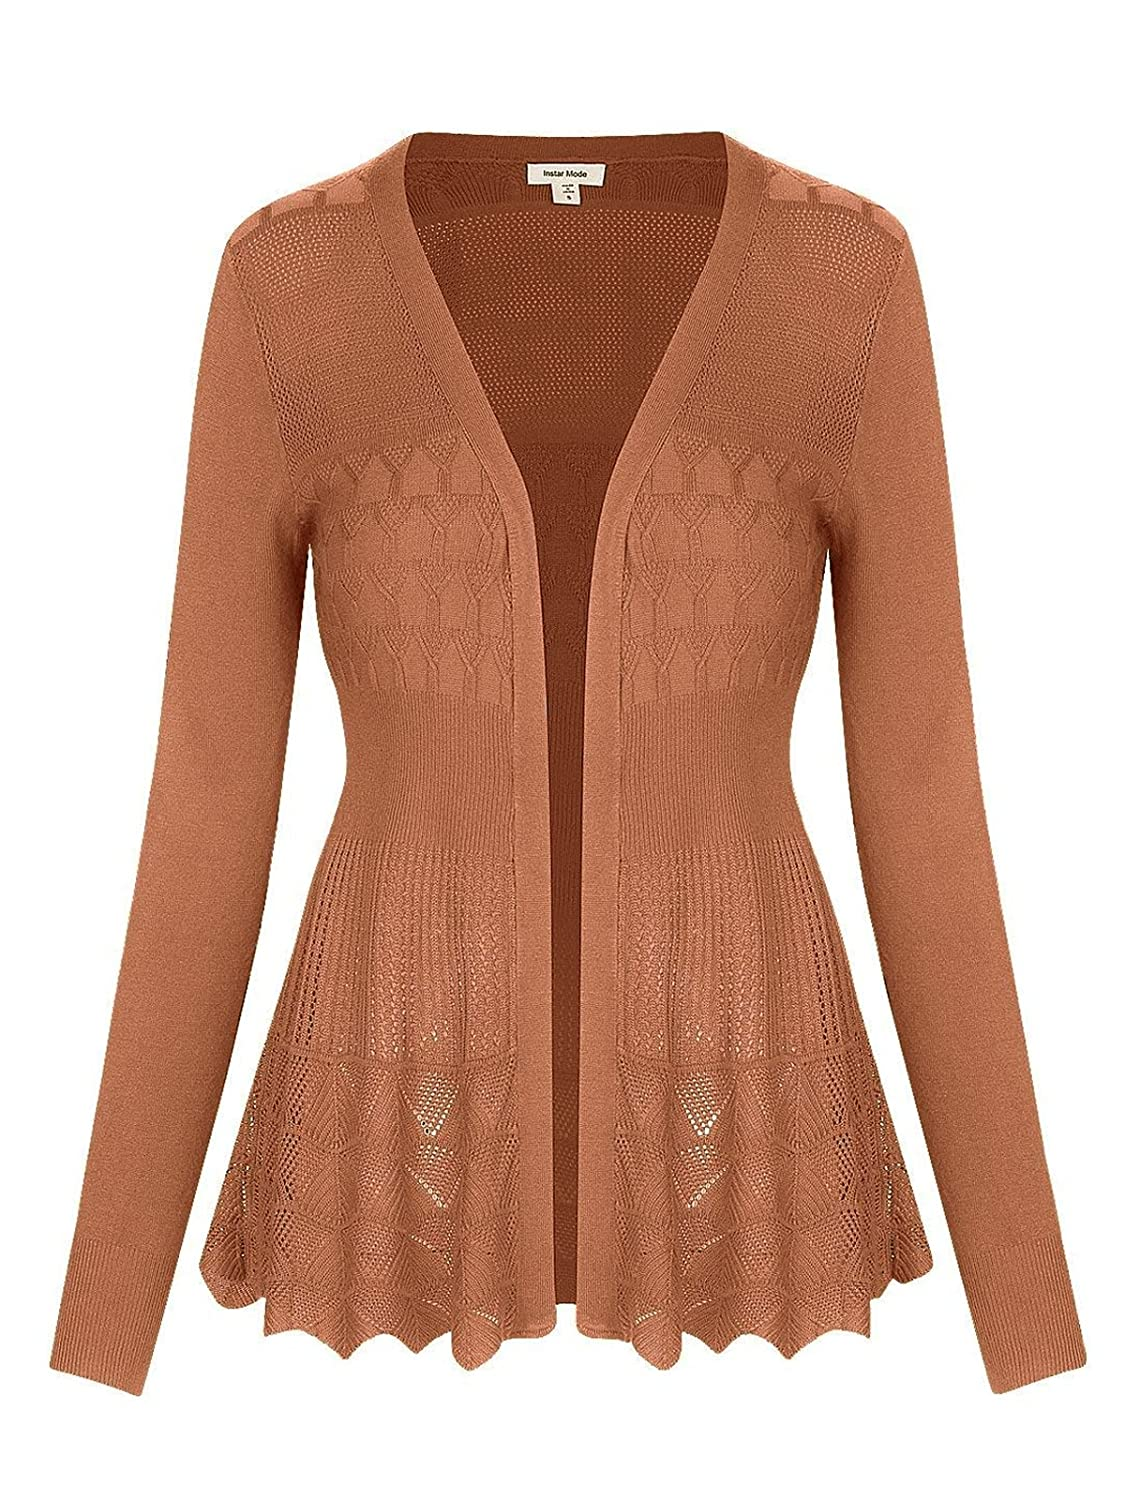 C09115 Dusty Coral Instar Mode InstarMode Women's Long Sleeve Crochet Knit Sweater Draped Open Cardigan